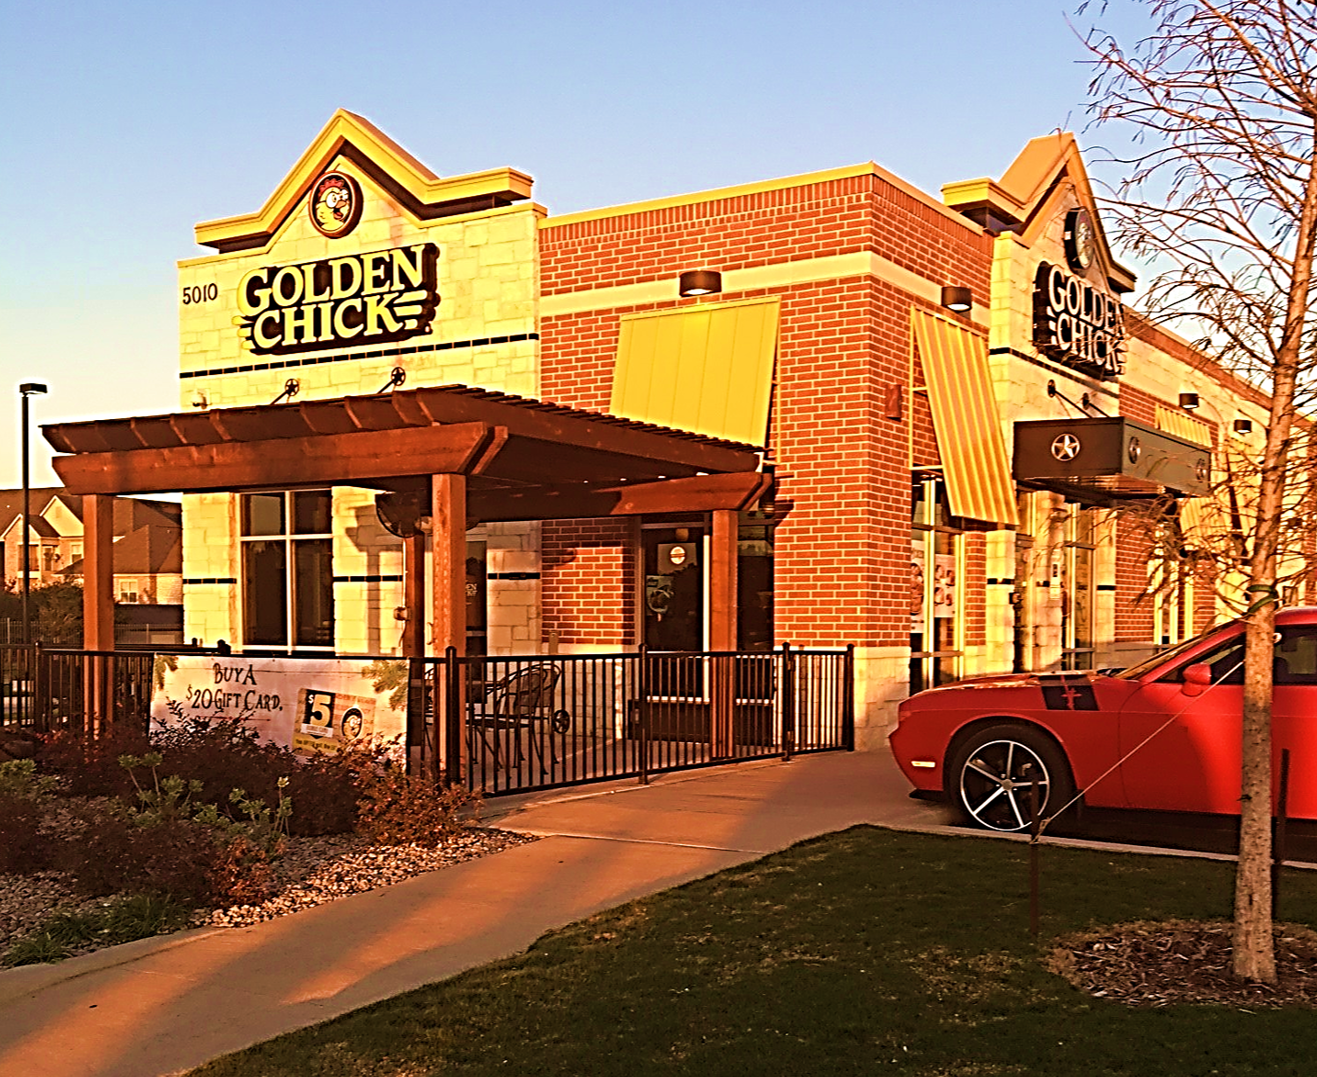 Golden Chick storefront.  Your local Golden Chick fast food restaurant in Grand Prairie, Texas